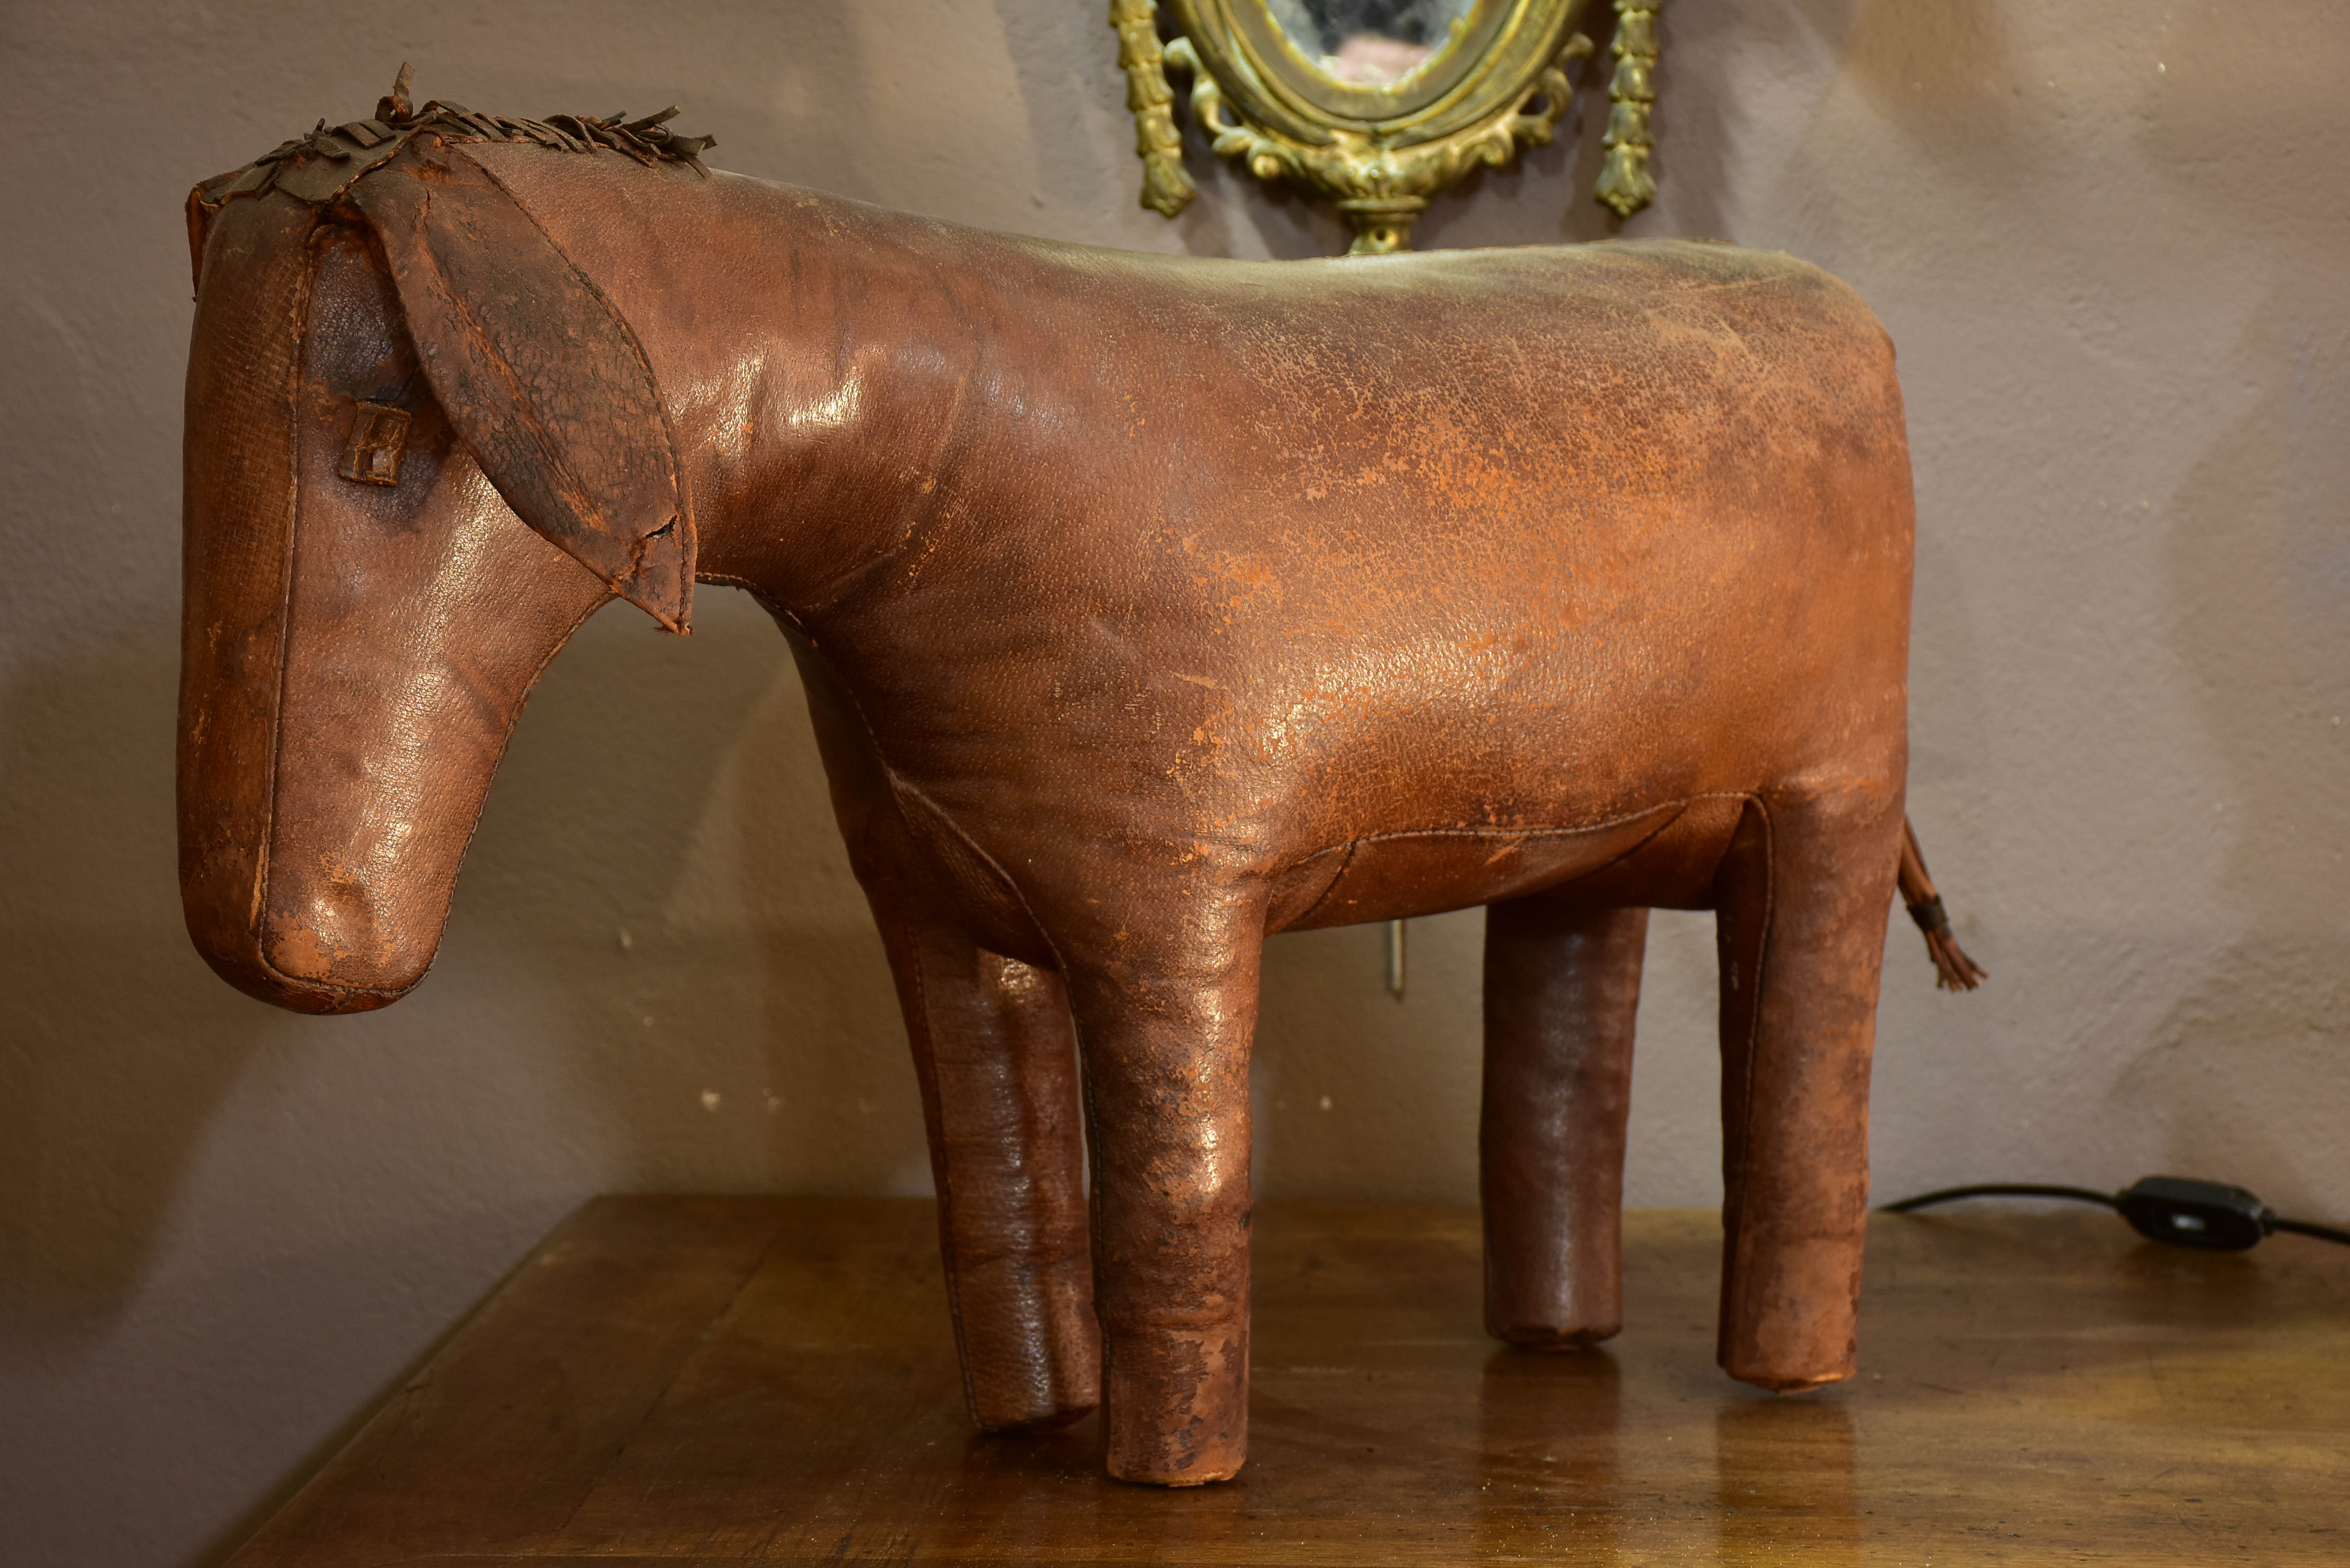 English leather donkey by Ormesa for Abercrombie and Fitch